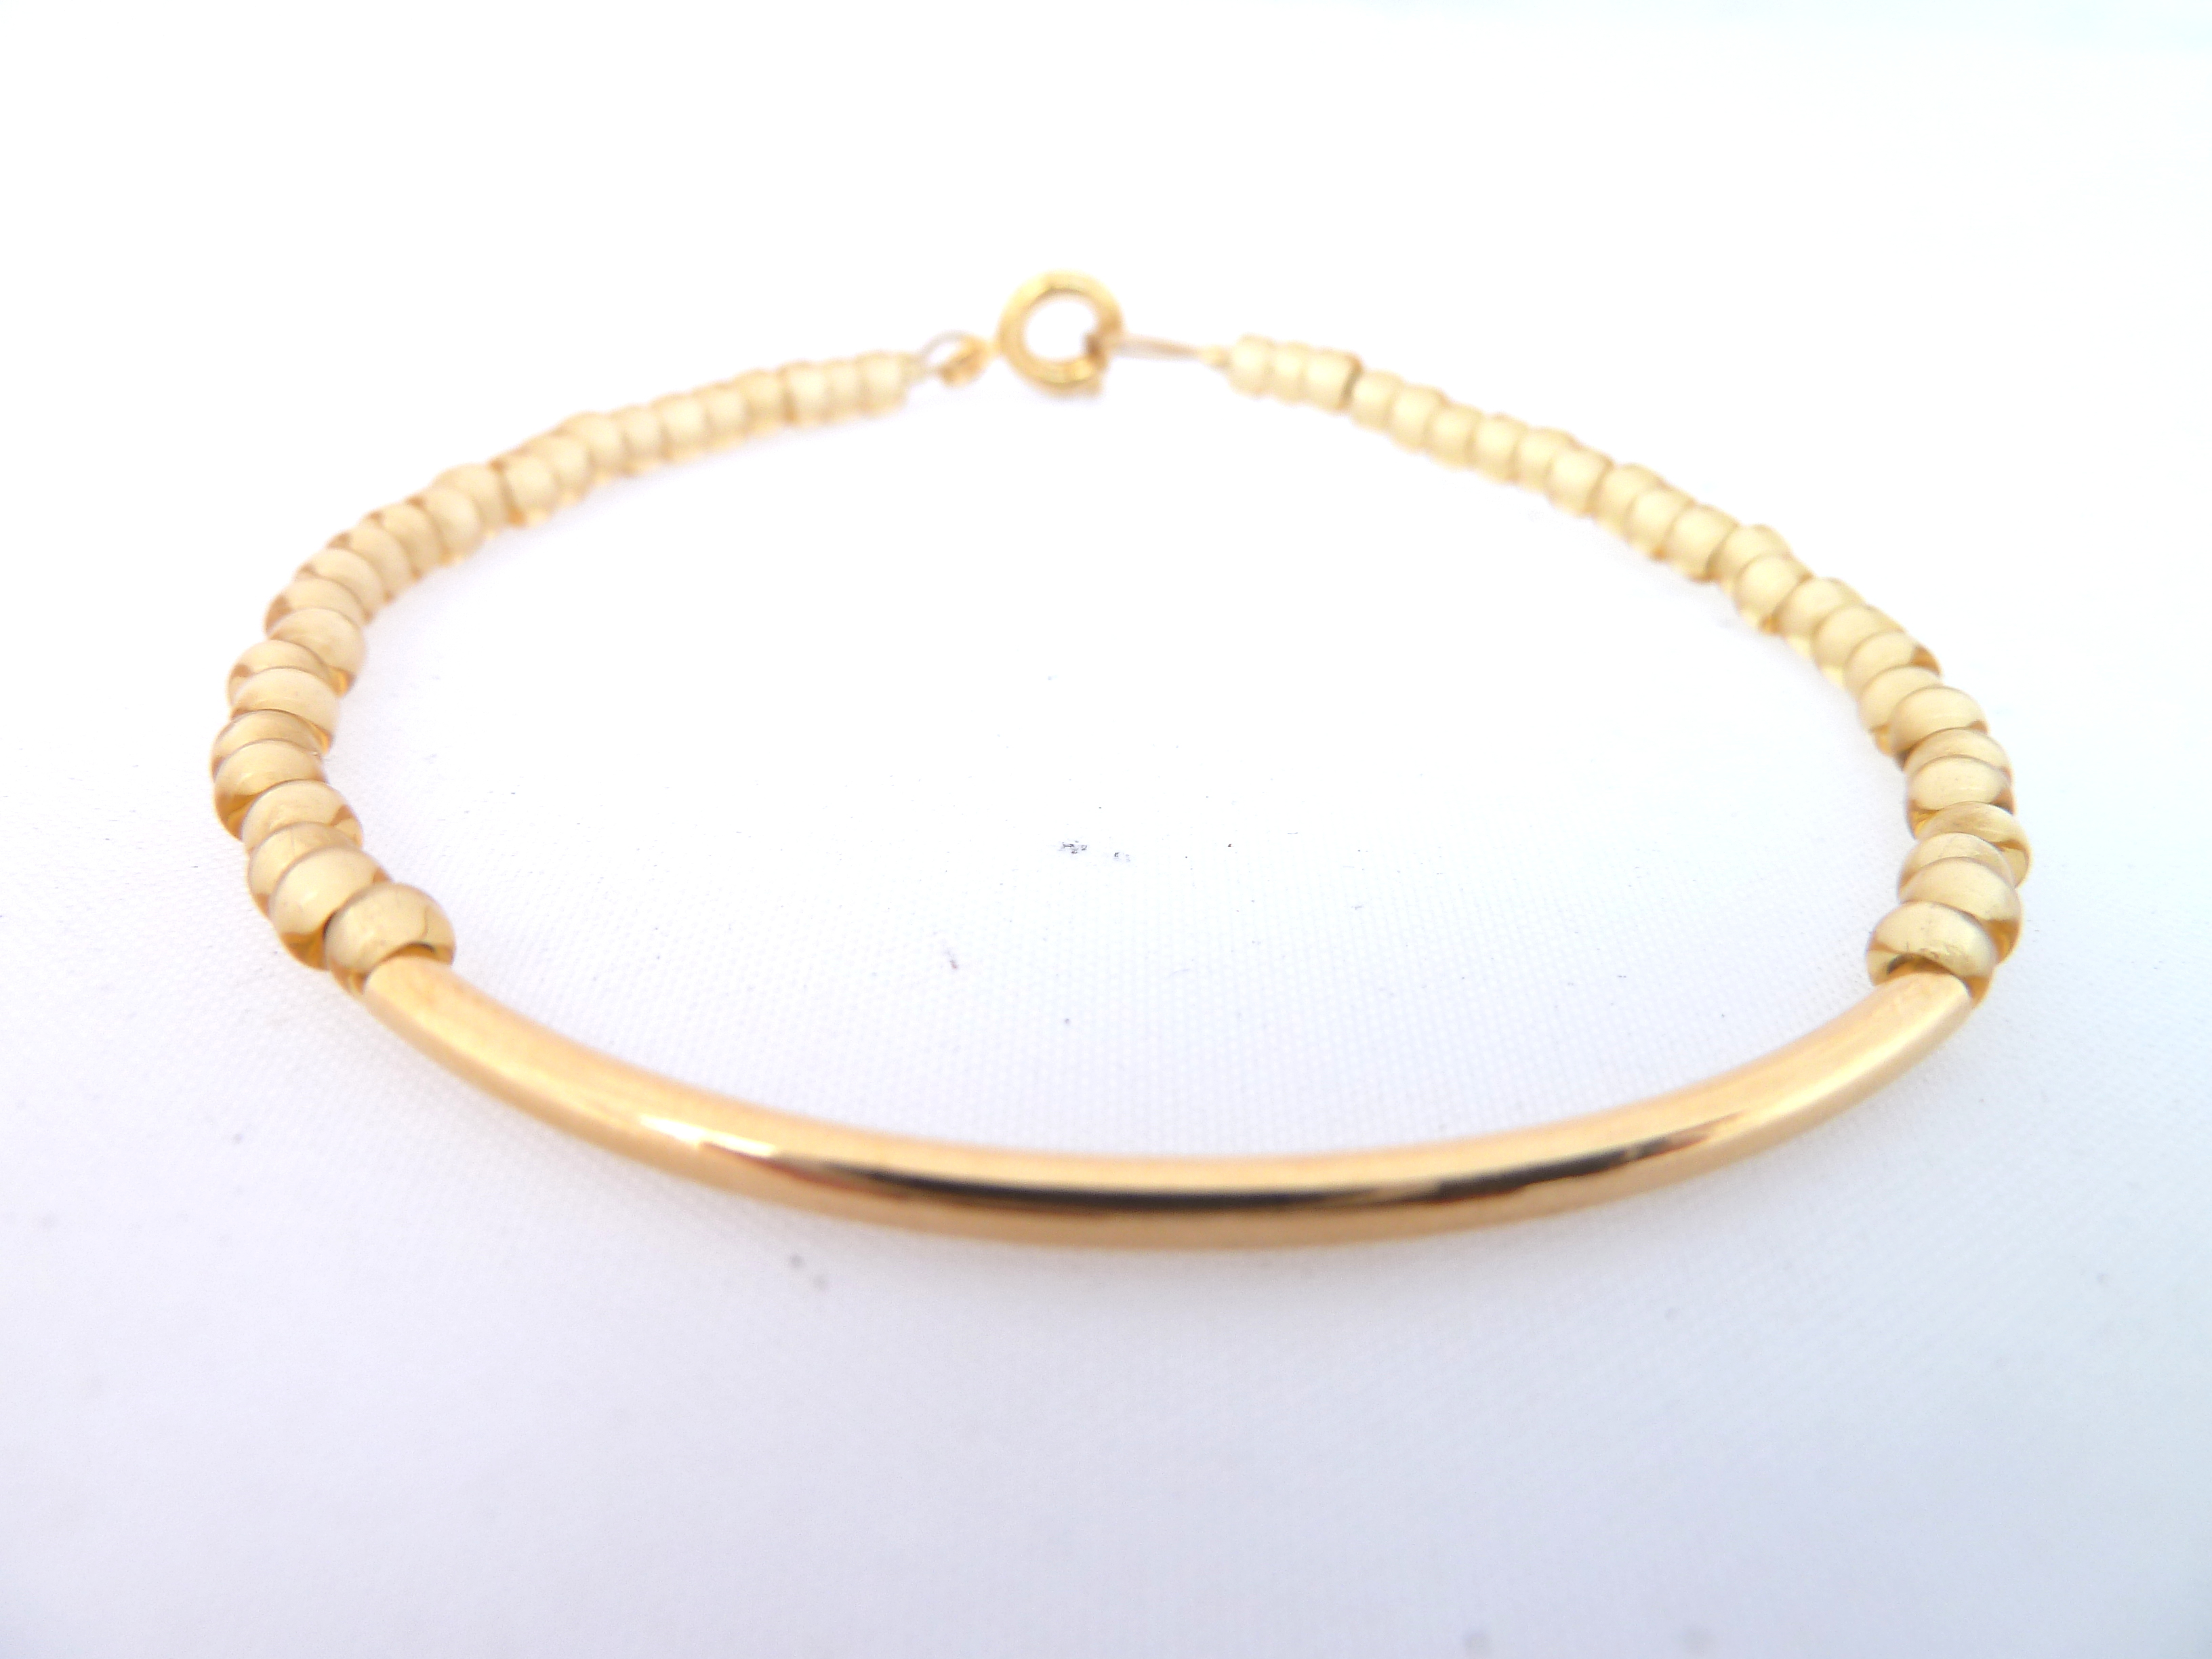 brotherhood andfersand bar products bracelet gold